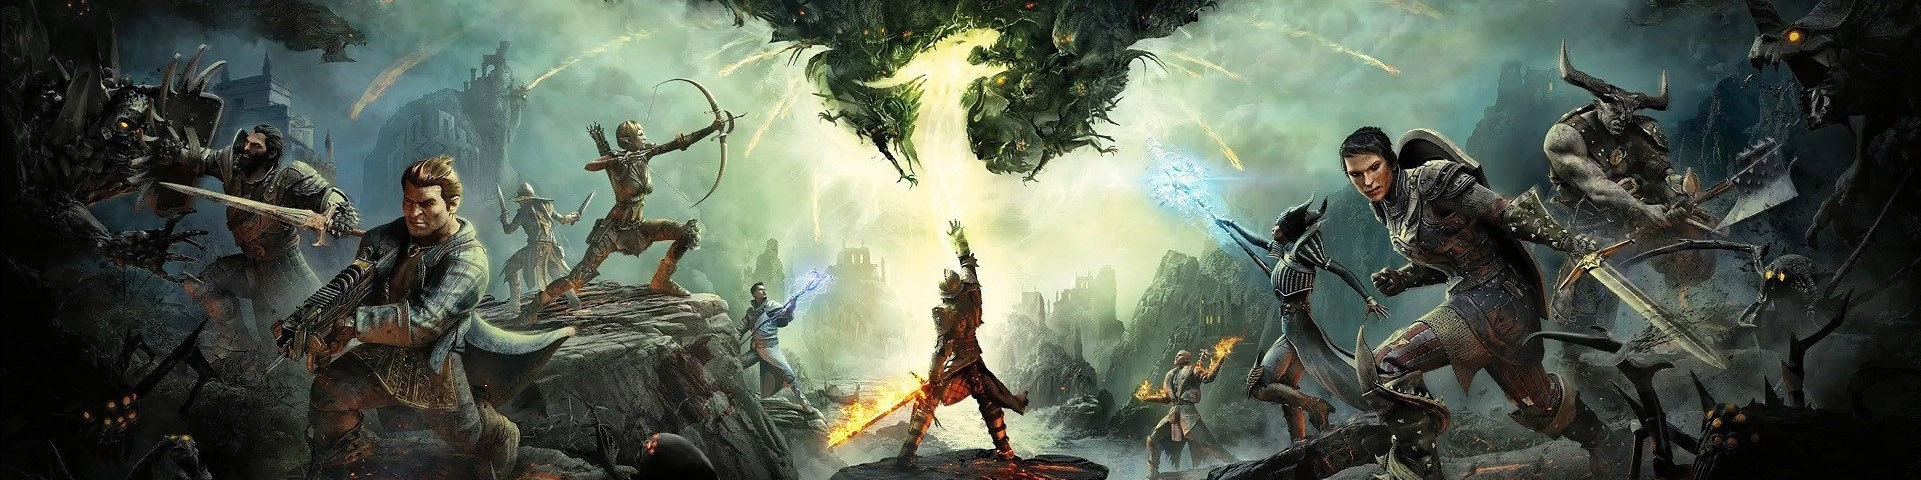 Dragon Age Inquisition Deluxe Upgrade For Pc Origin The items are not overpowered and suit leliana's looks and background quite well. dragon age inquisition deluxe upgrade